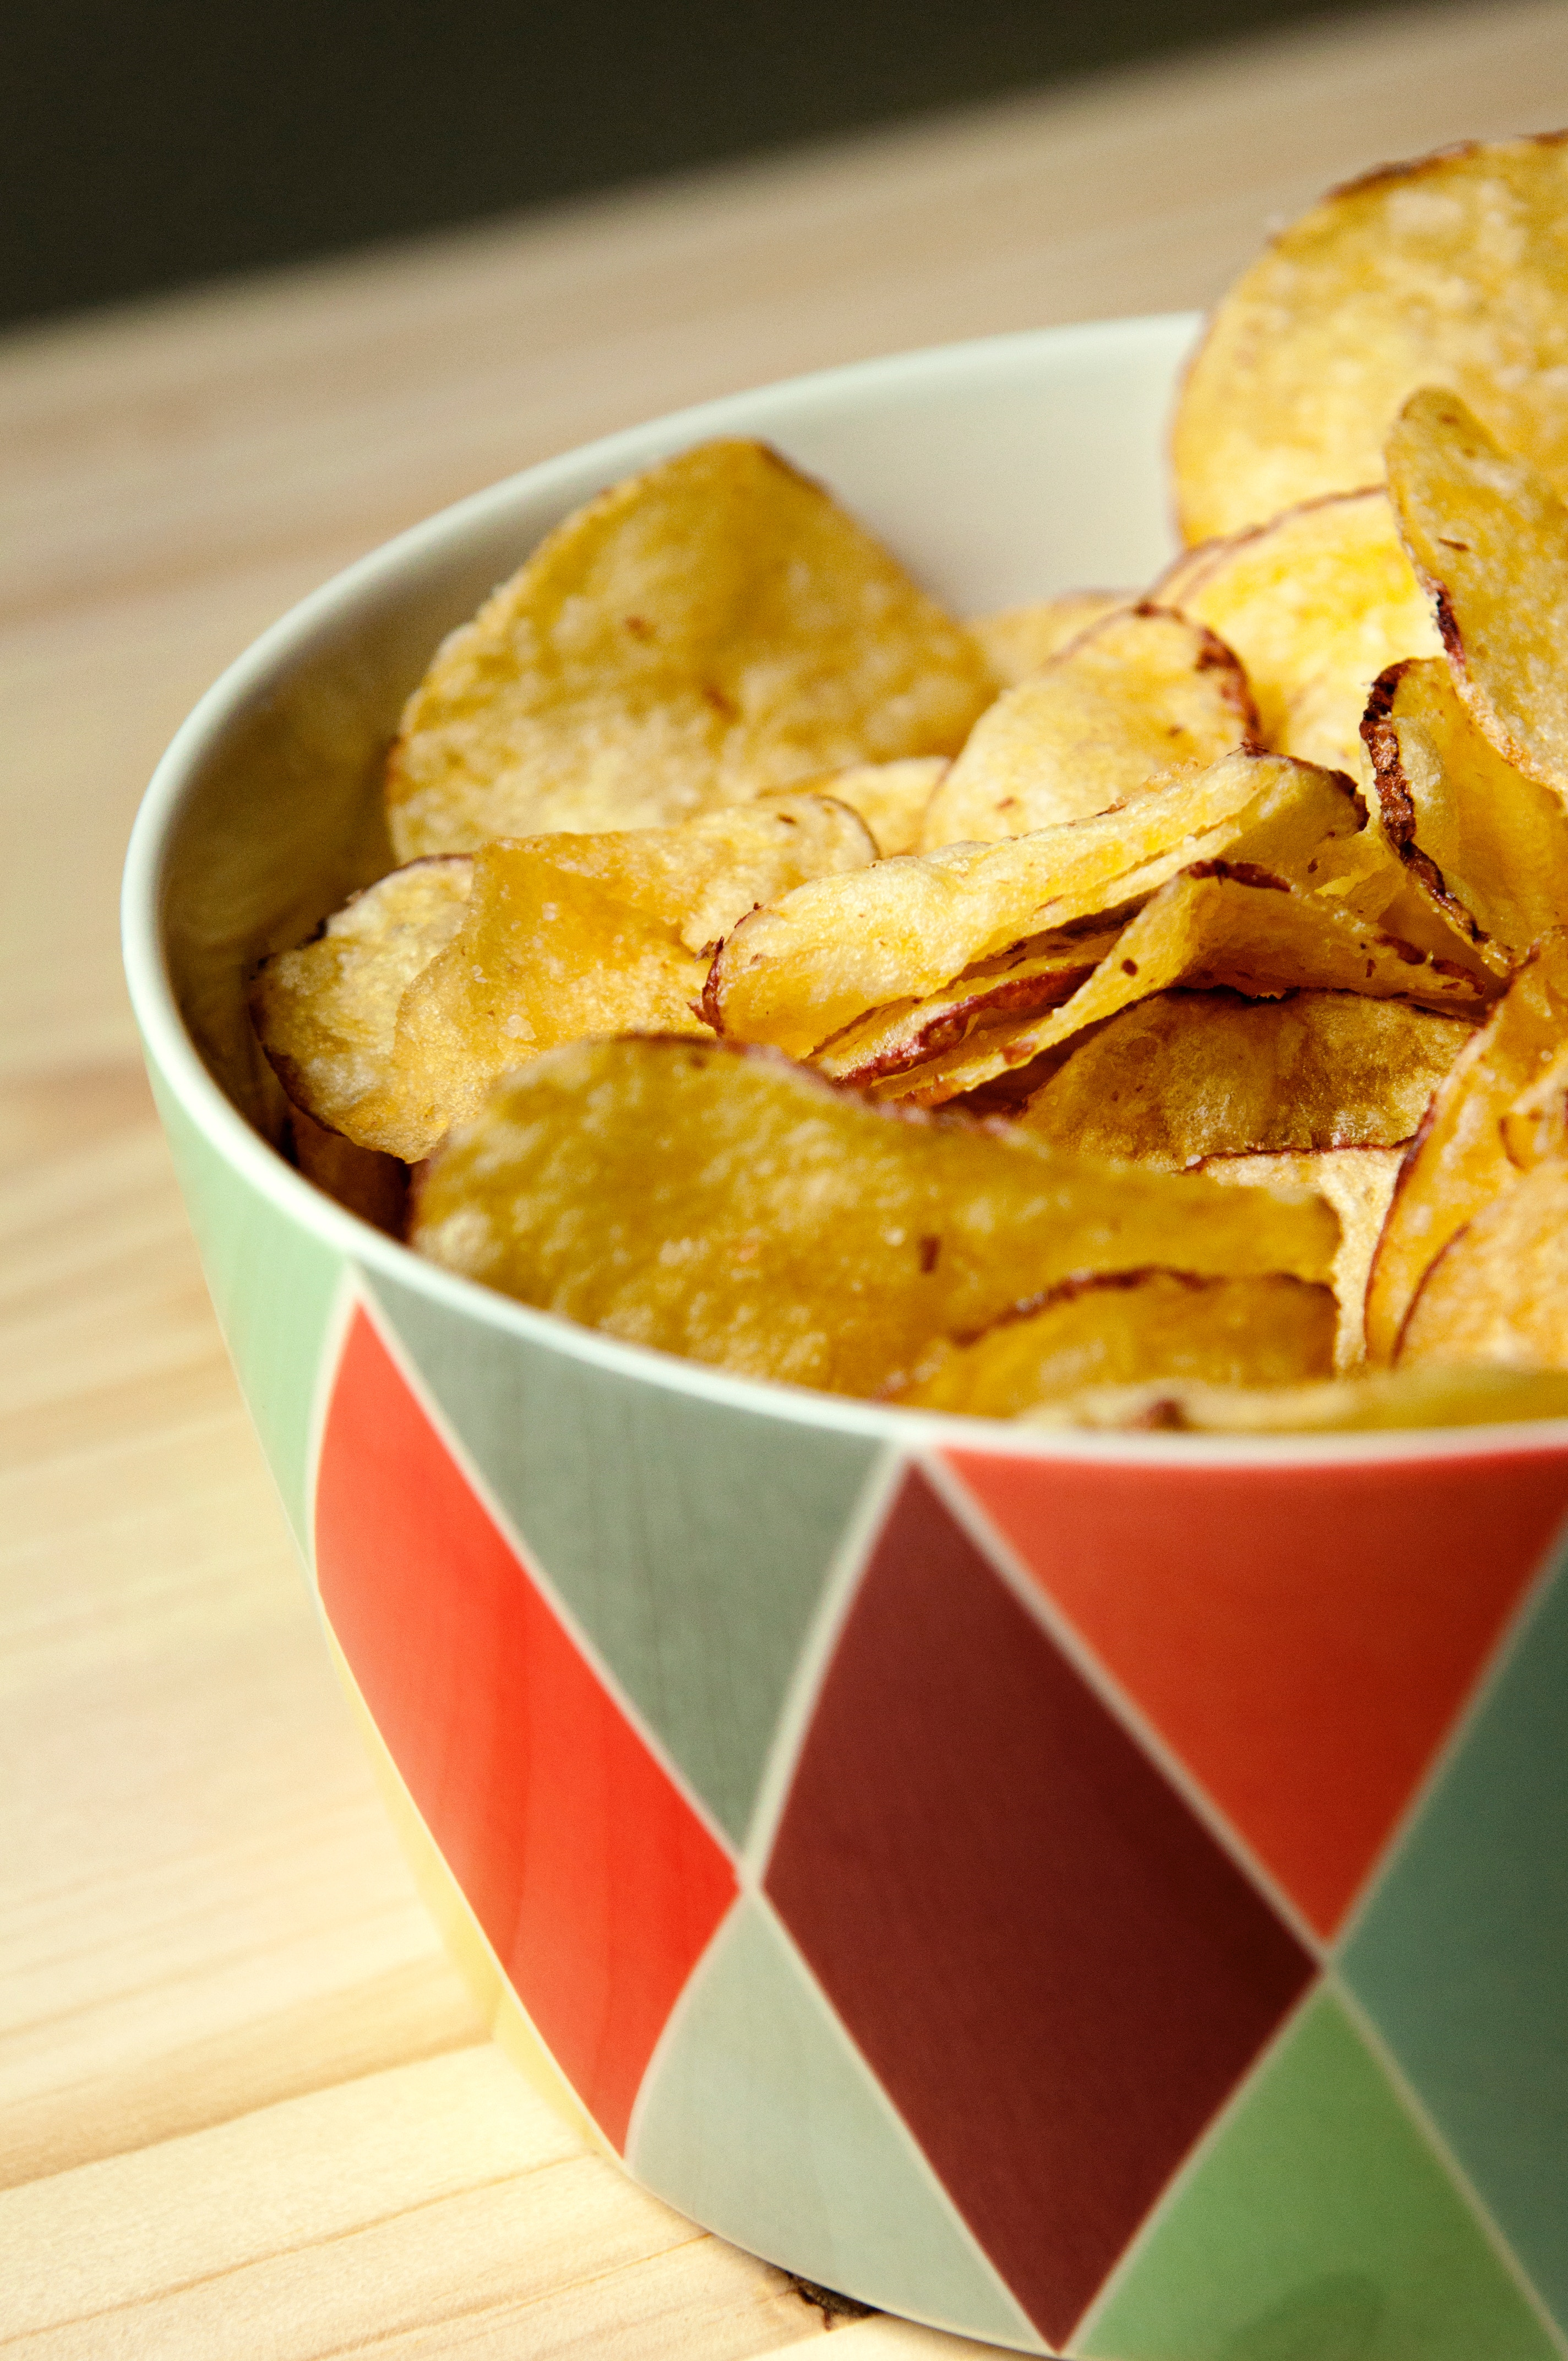 5 Strategies To End Late-Night Snacking